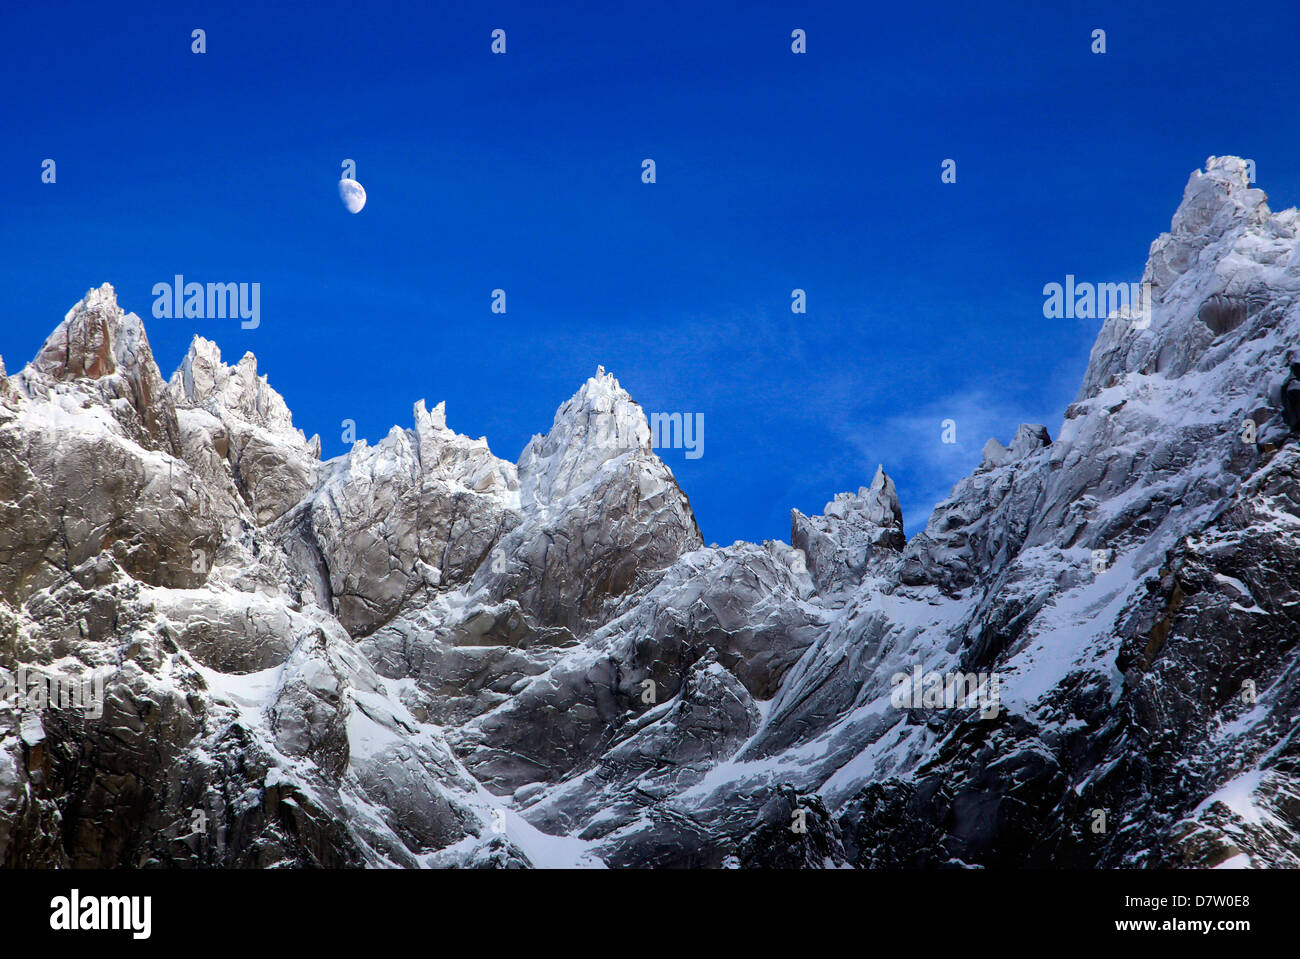 The Aiguille du Midi after three days of snowfall, Mont Blanc, French  Alps, France - Stock Image